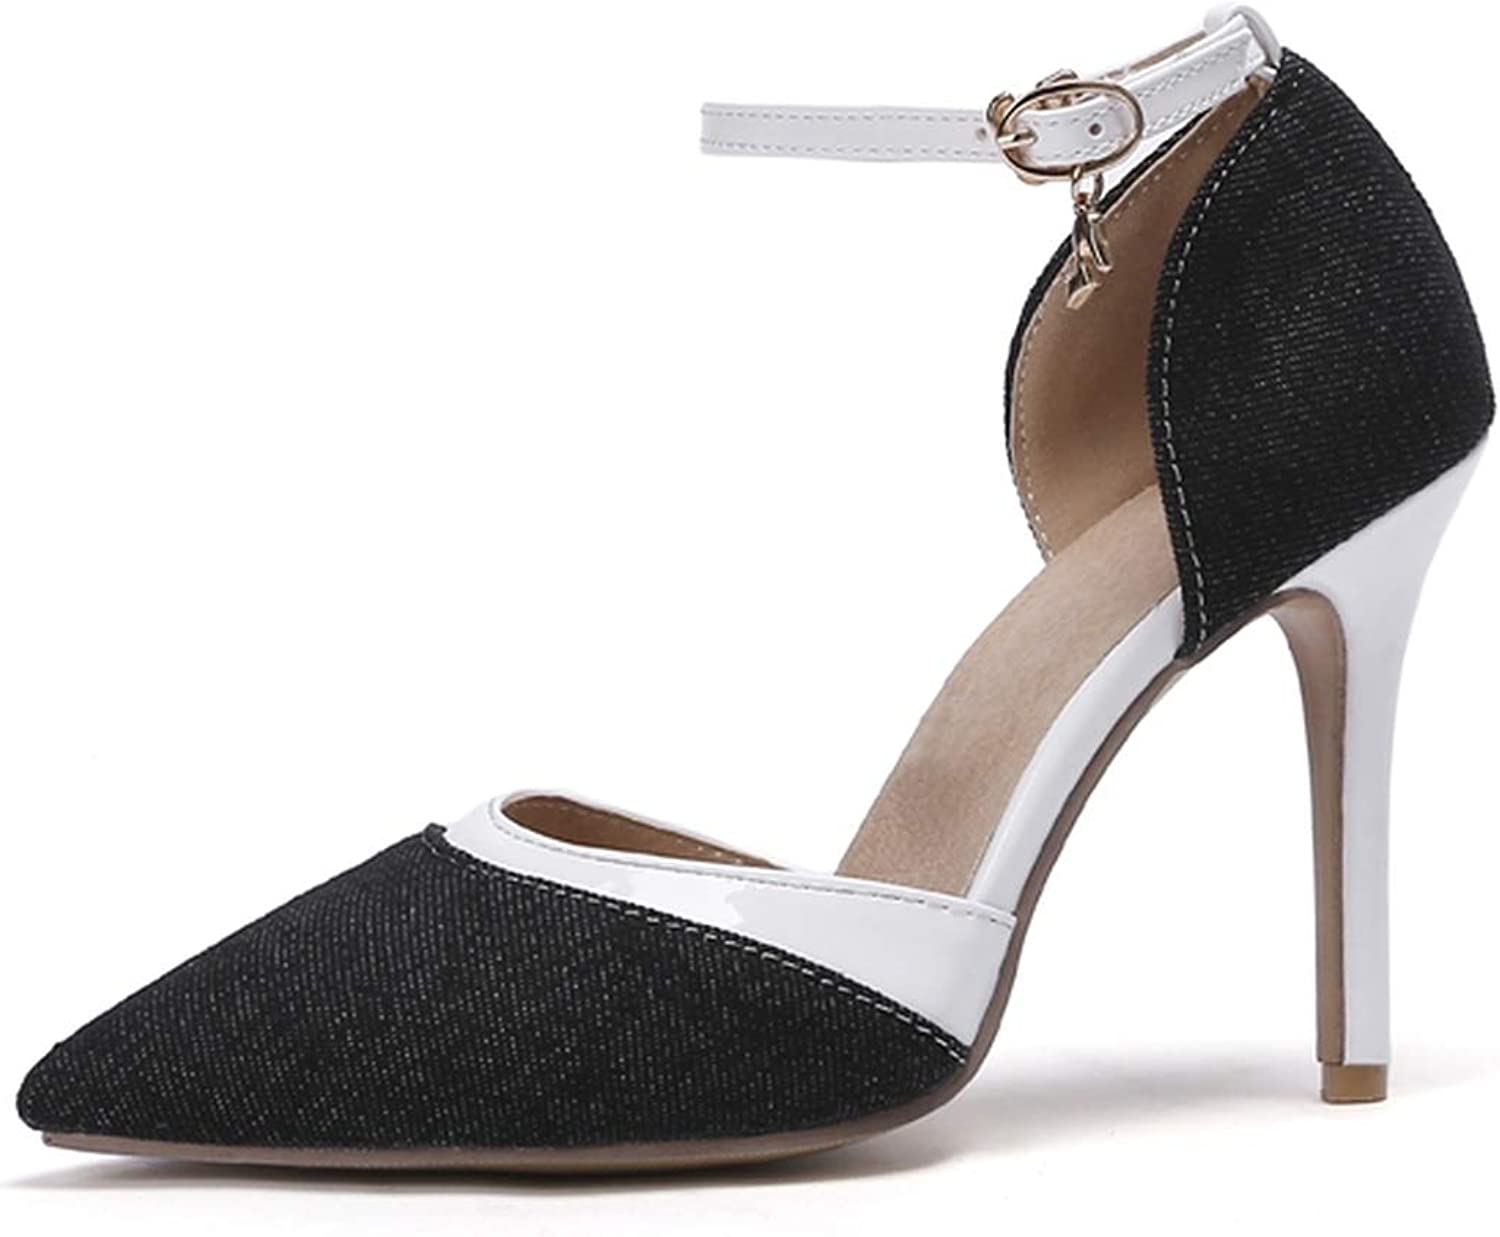 2019 New Ankle Strap Women Pumps Pointed Toe Stiletto high Heels Wedding shoes Woman Drop Ship,Black,11